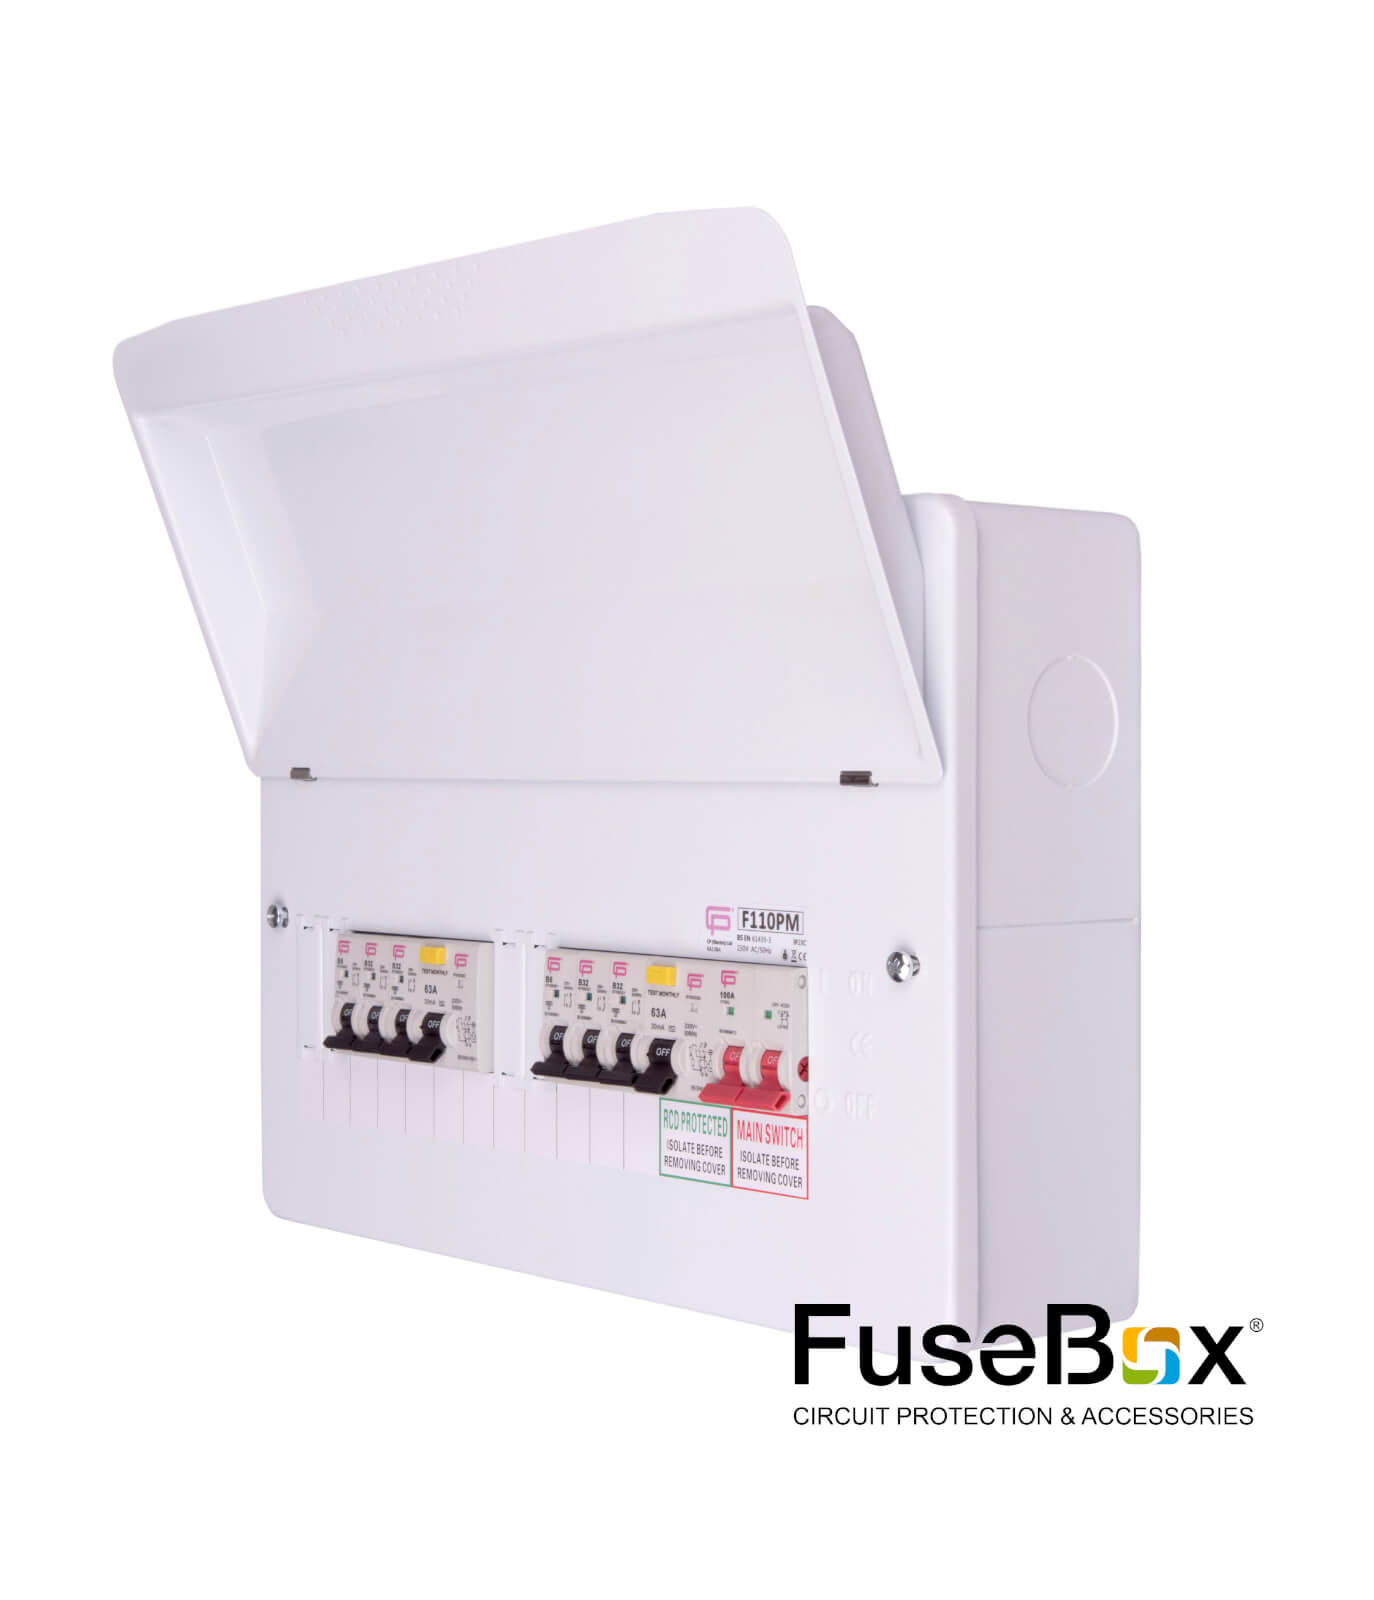 hight resolution of populated dual rcd 10way 6xmcbs metal sku f110pm category fusebox consumer units